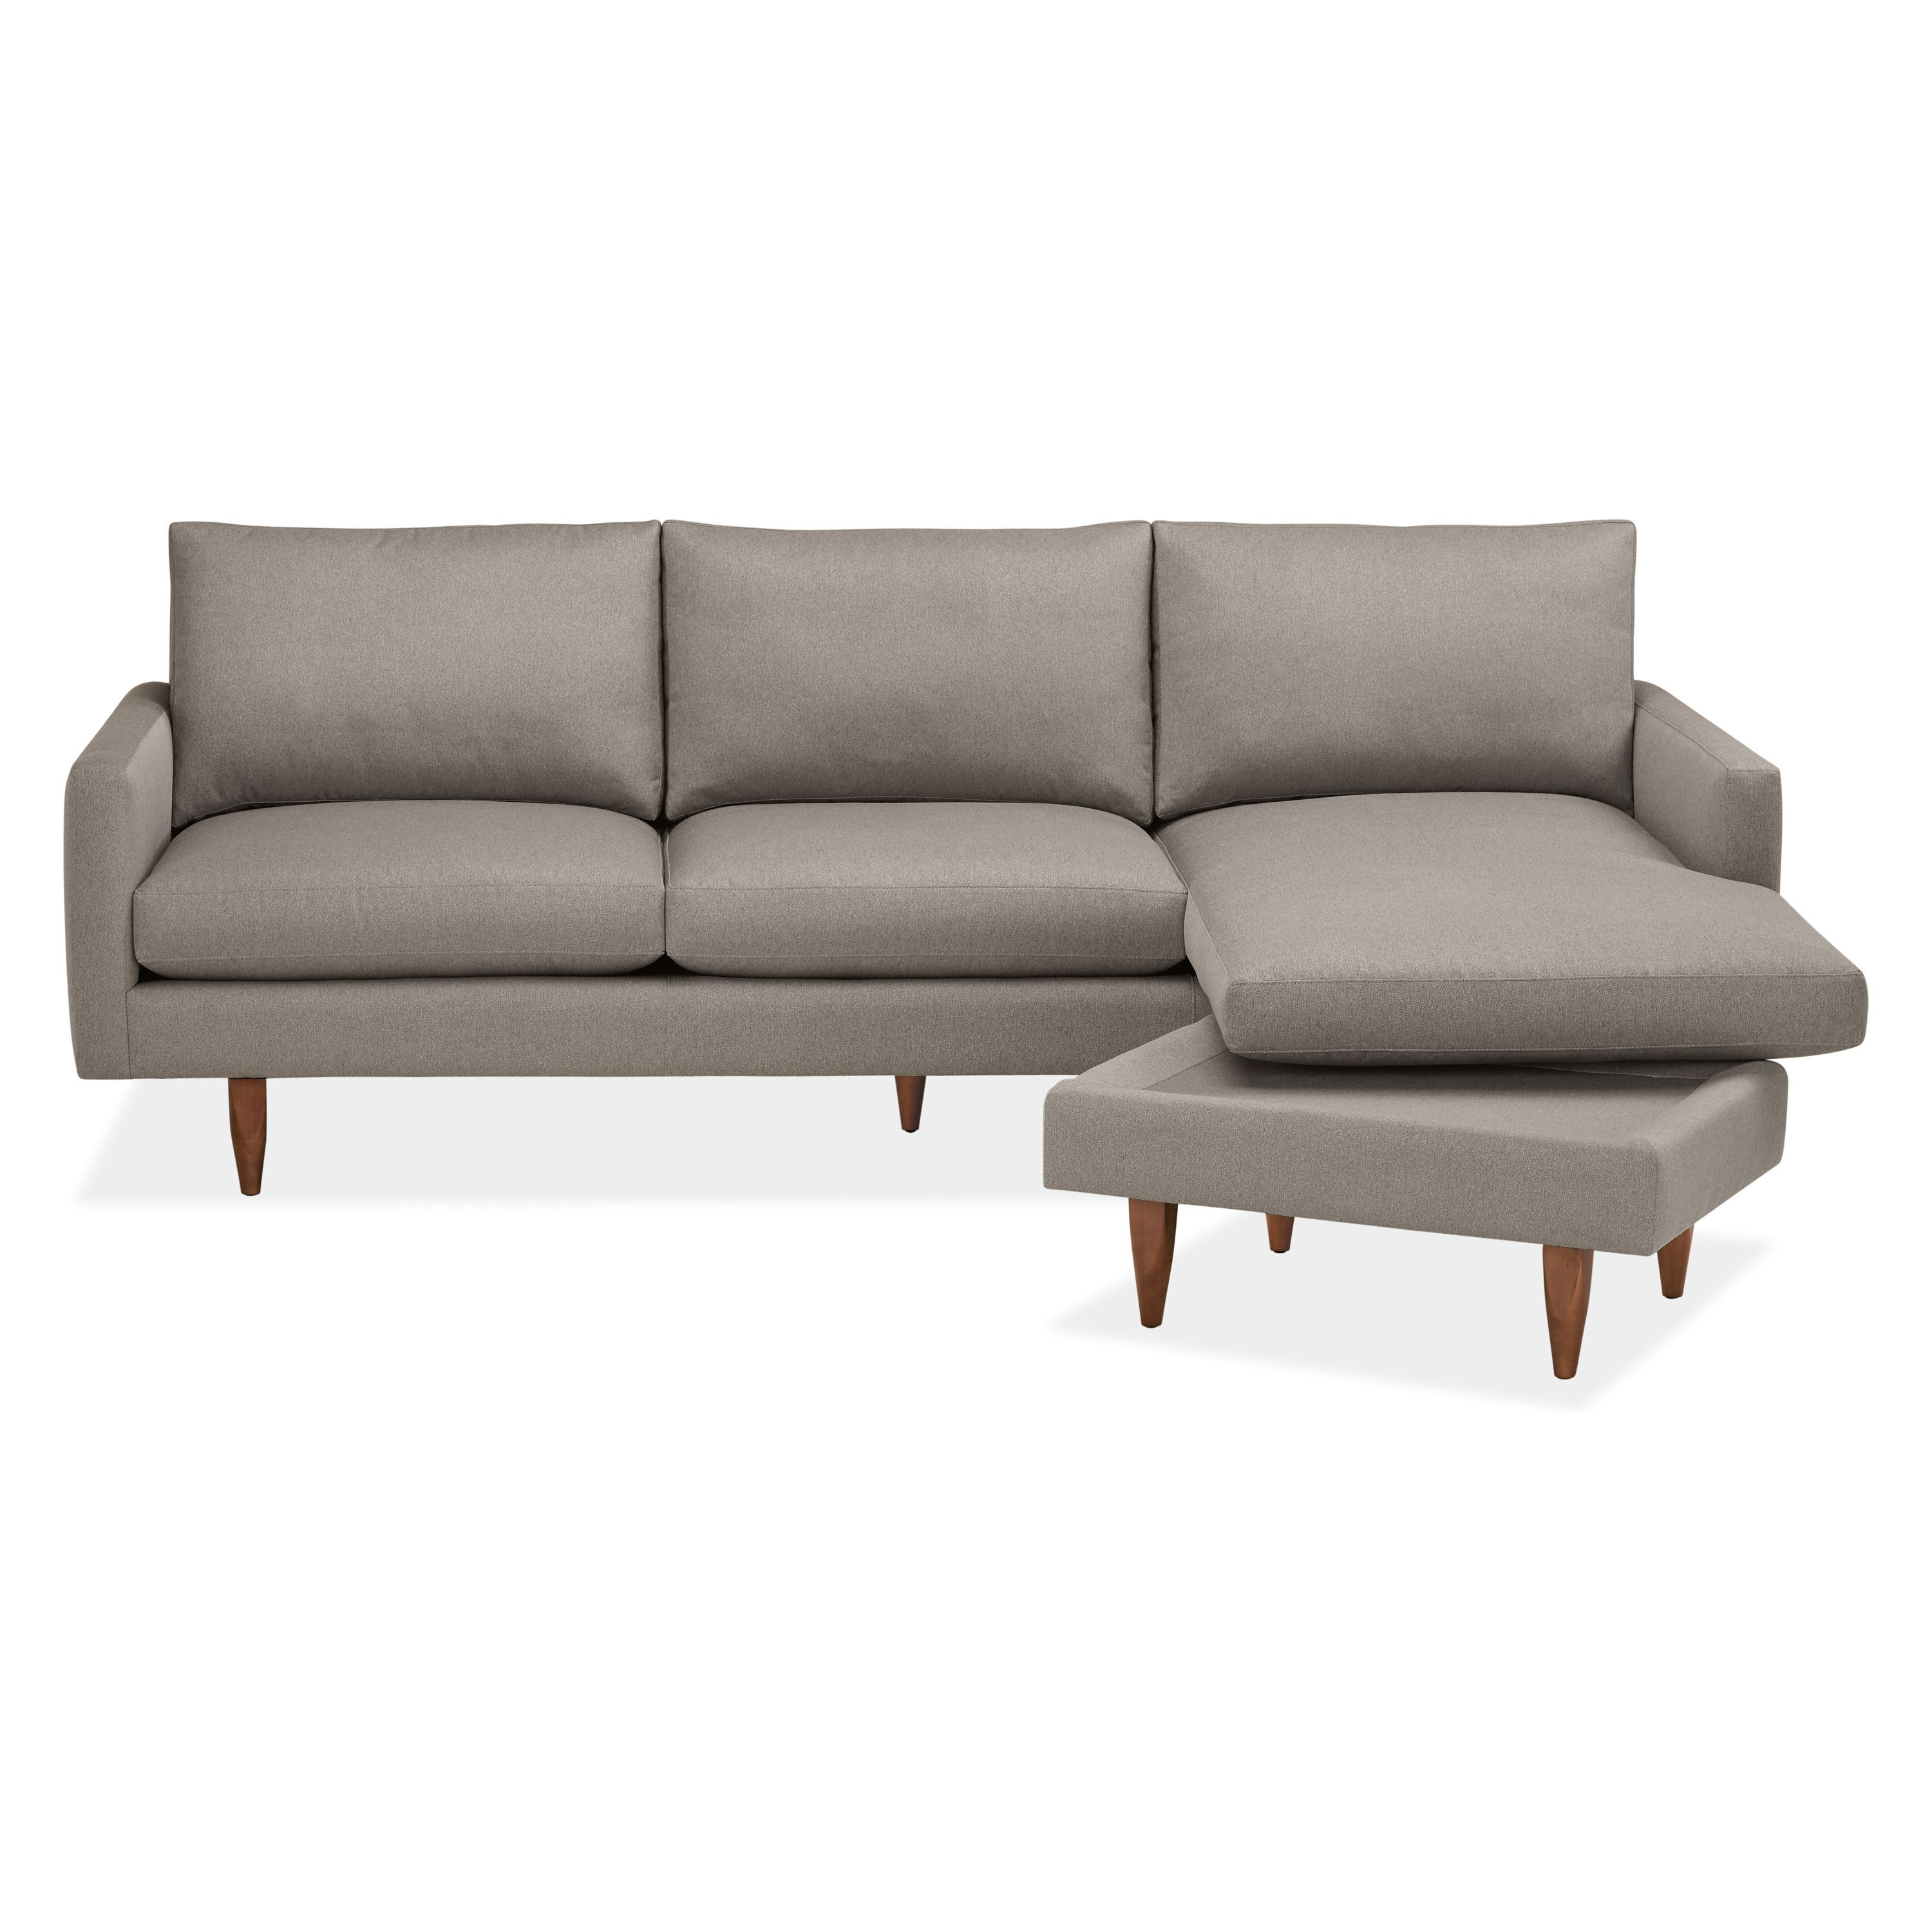 Room Board Jasper Sofas With Chaise Sofa Loveseat Set